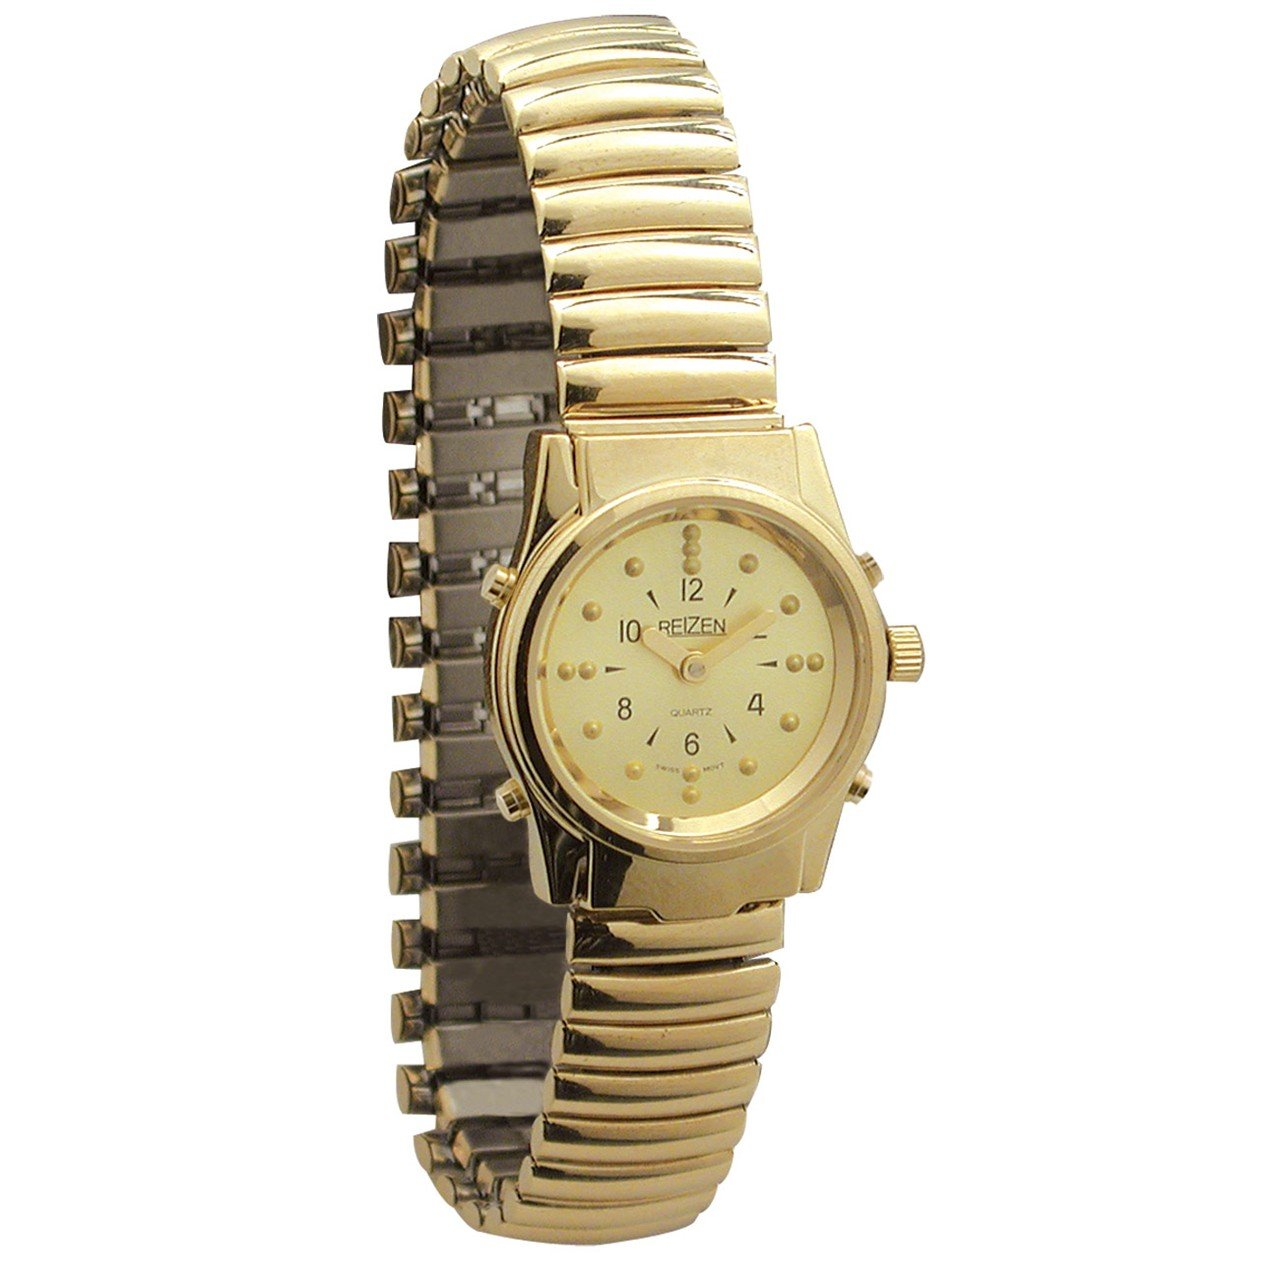 Ladies Gold-Tone Braille and Talking Watch - Exp Band by Reizen